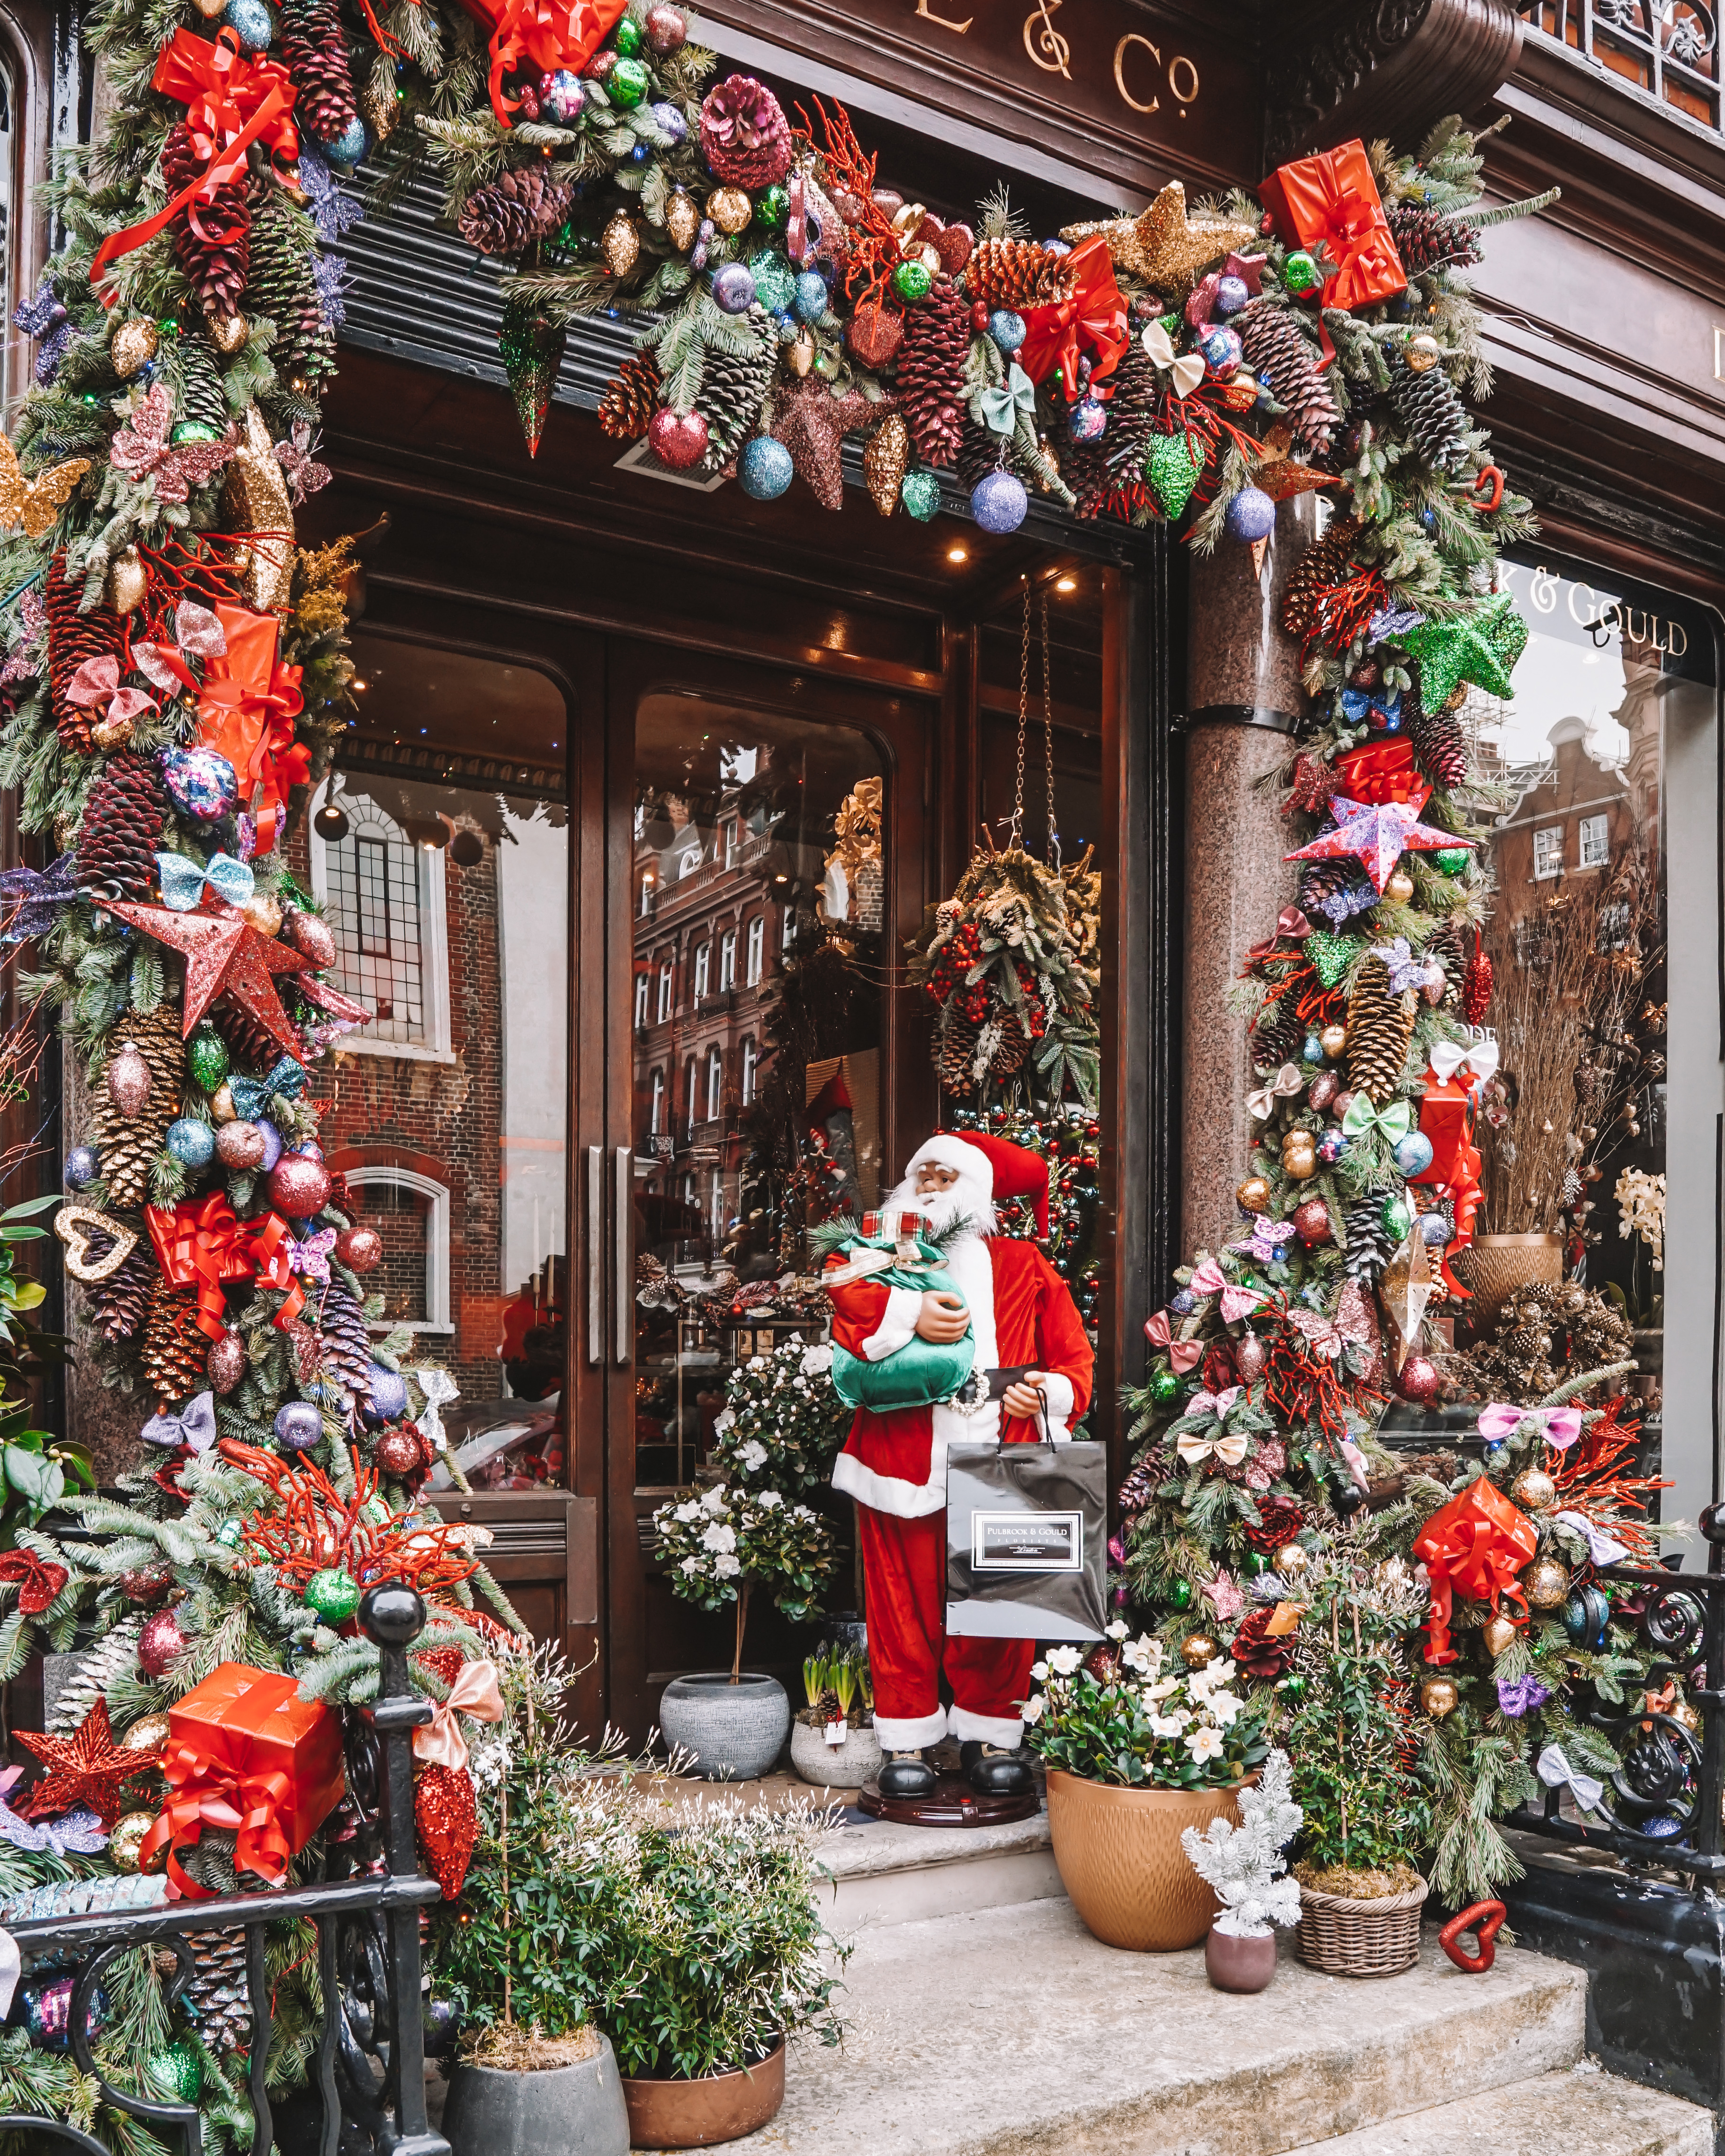 Christmas in London | London's Best Festive Displays | Pulbrook & Gould